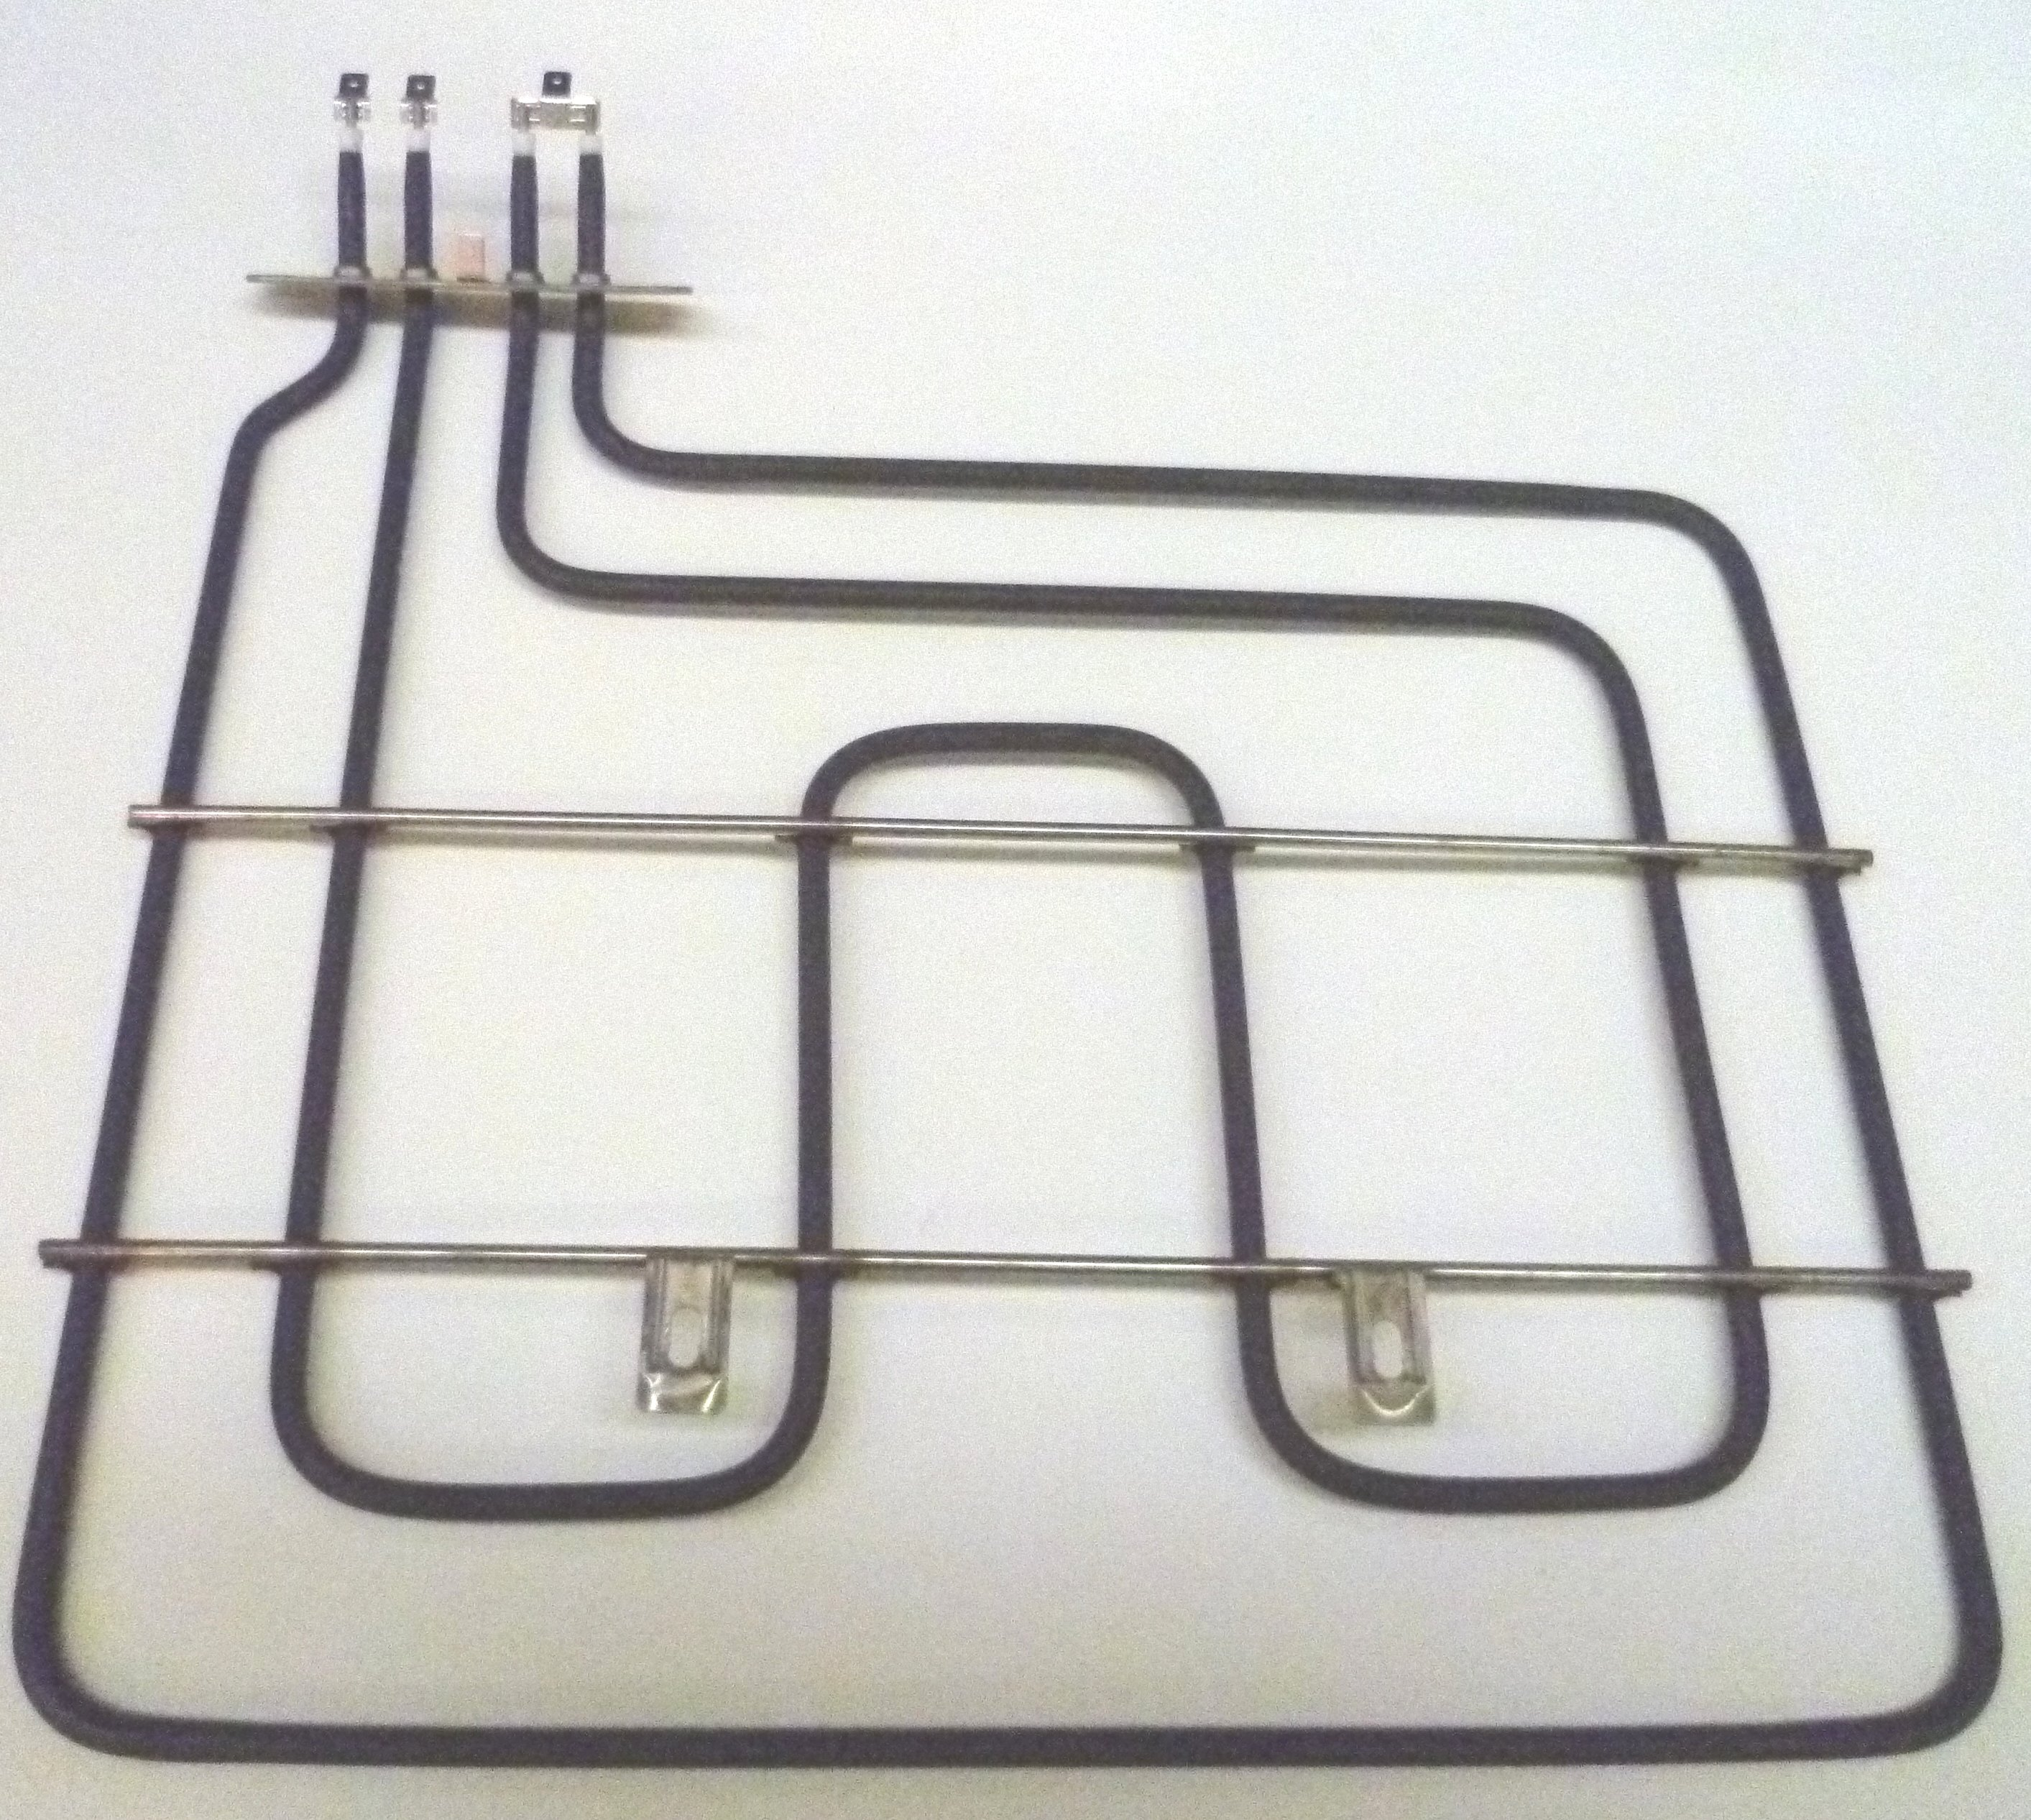 Description of BEKO GRILL / OVEN ELEMENT 1100W 1100W 230V